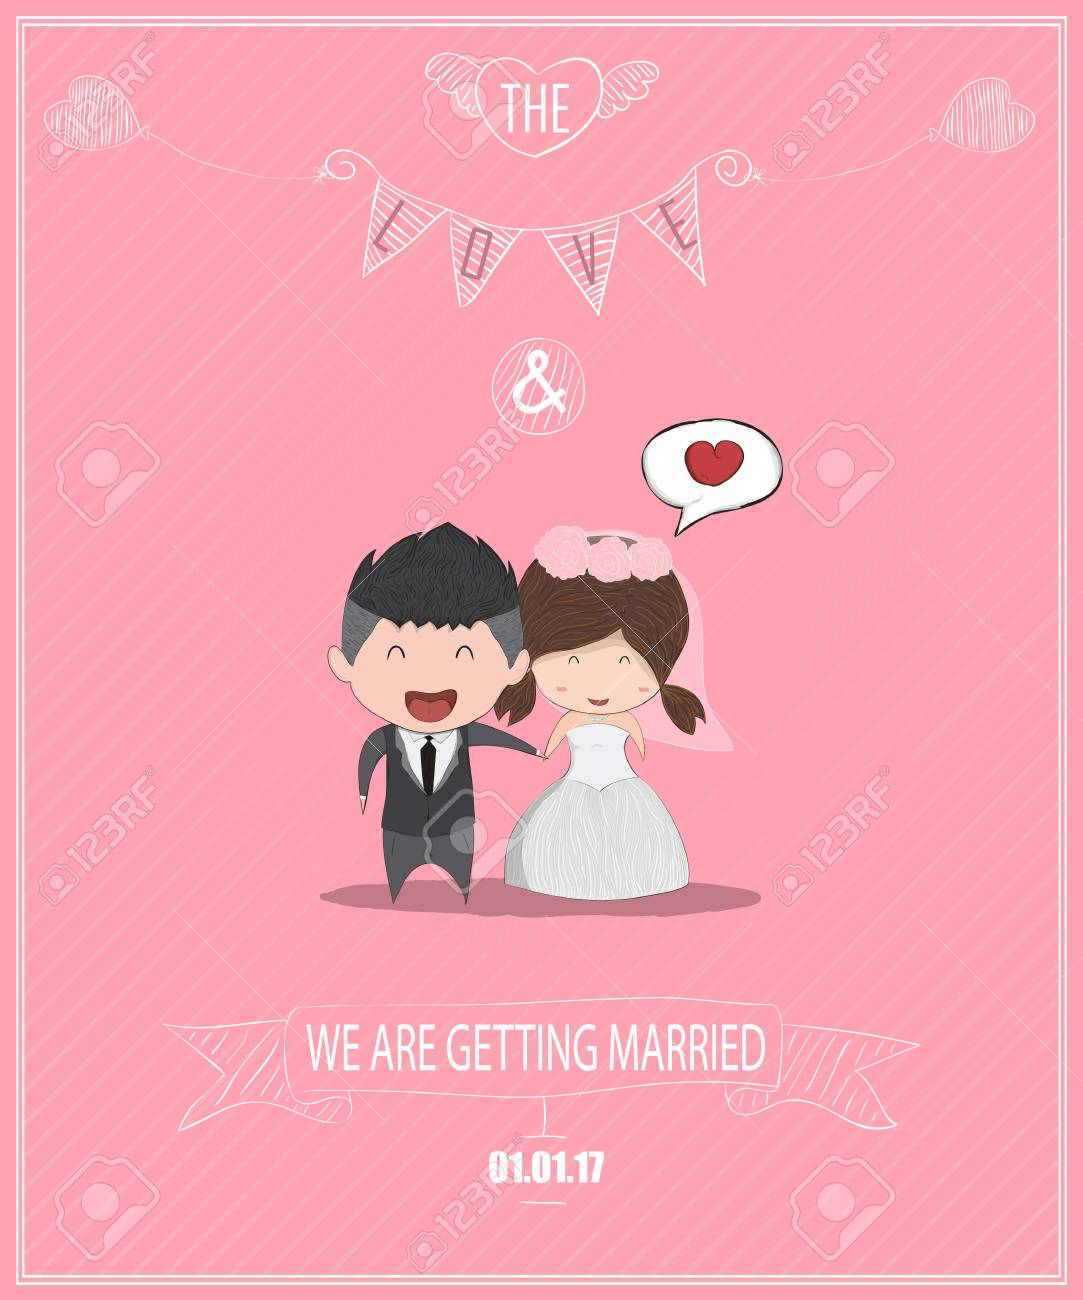 Duration Cute Cartoon Wedding Couple Men And Women Card Cute Royalty Free Cliparts Vectors And Stock Illustration Image 90775535